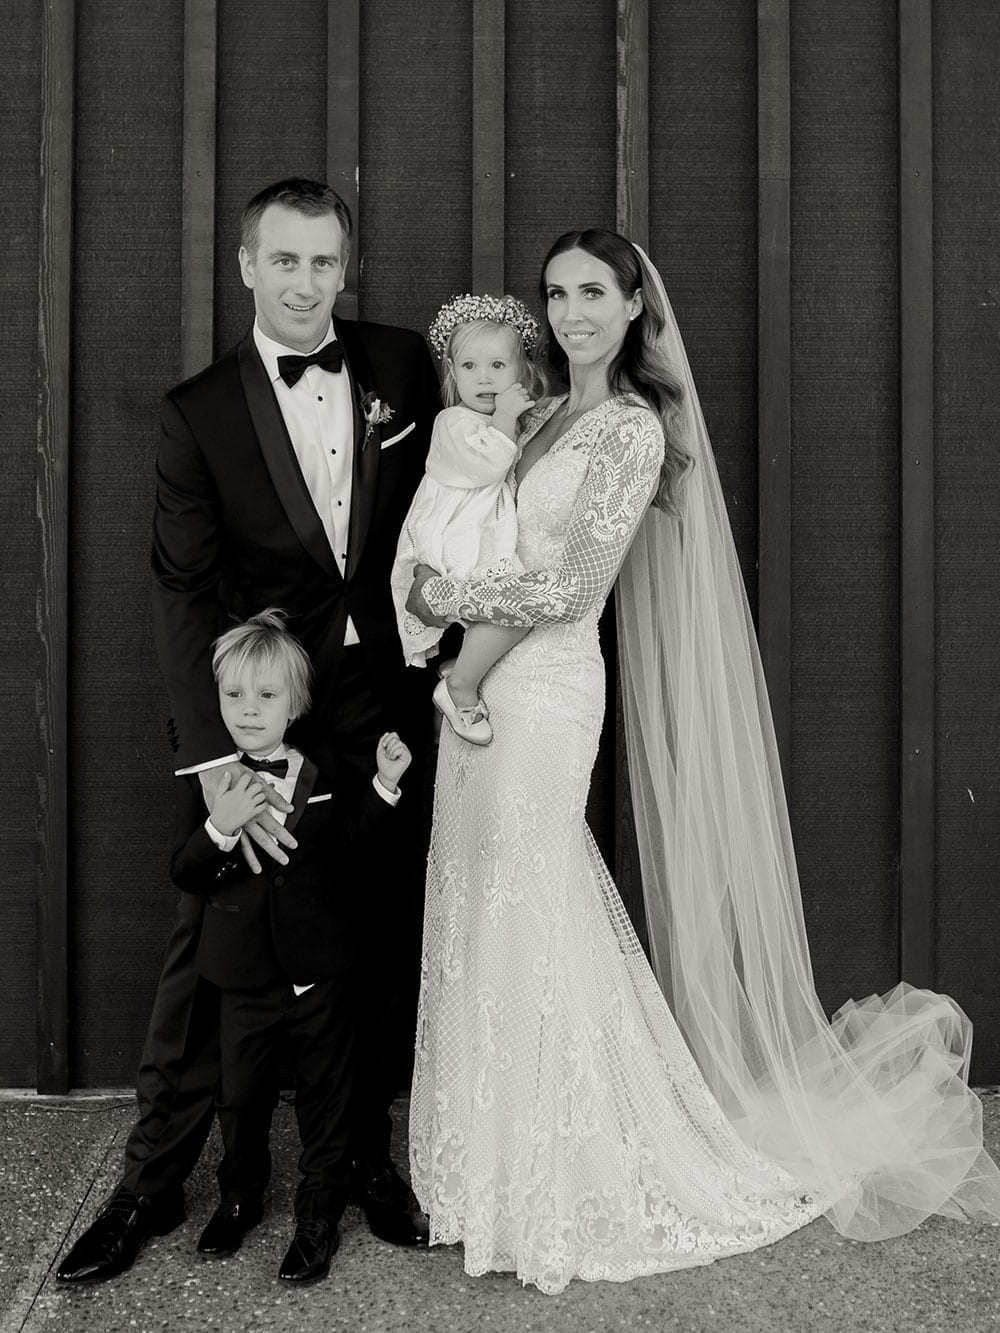 Vinka Design Features Real Weddings - Bride in bespoke fitted lace gown with family - in black and white